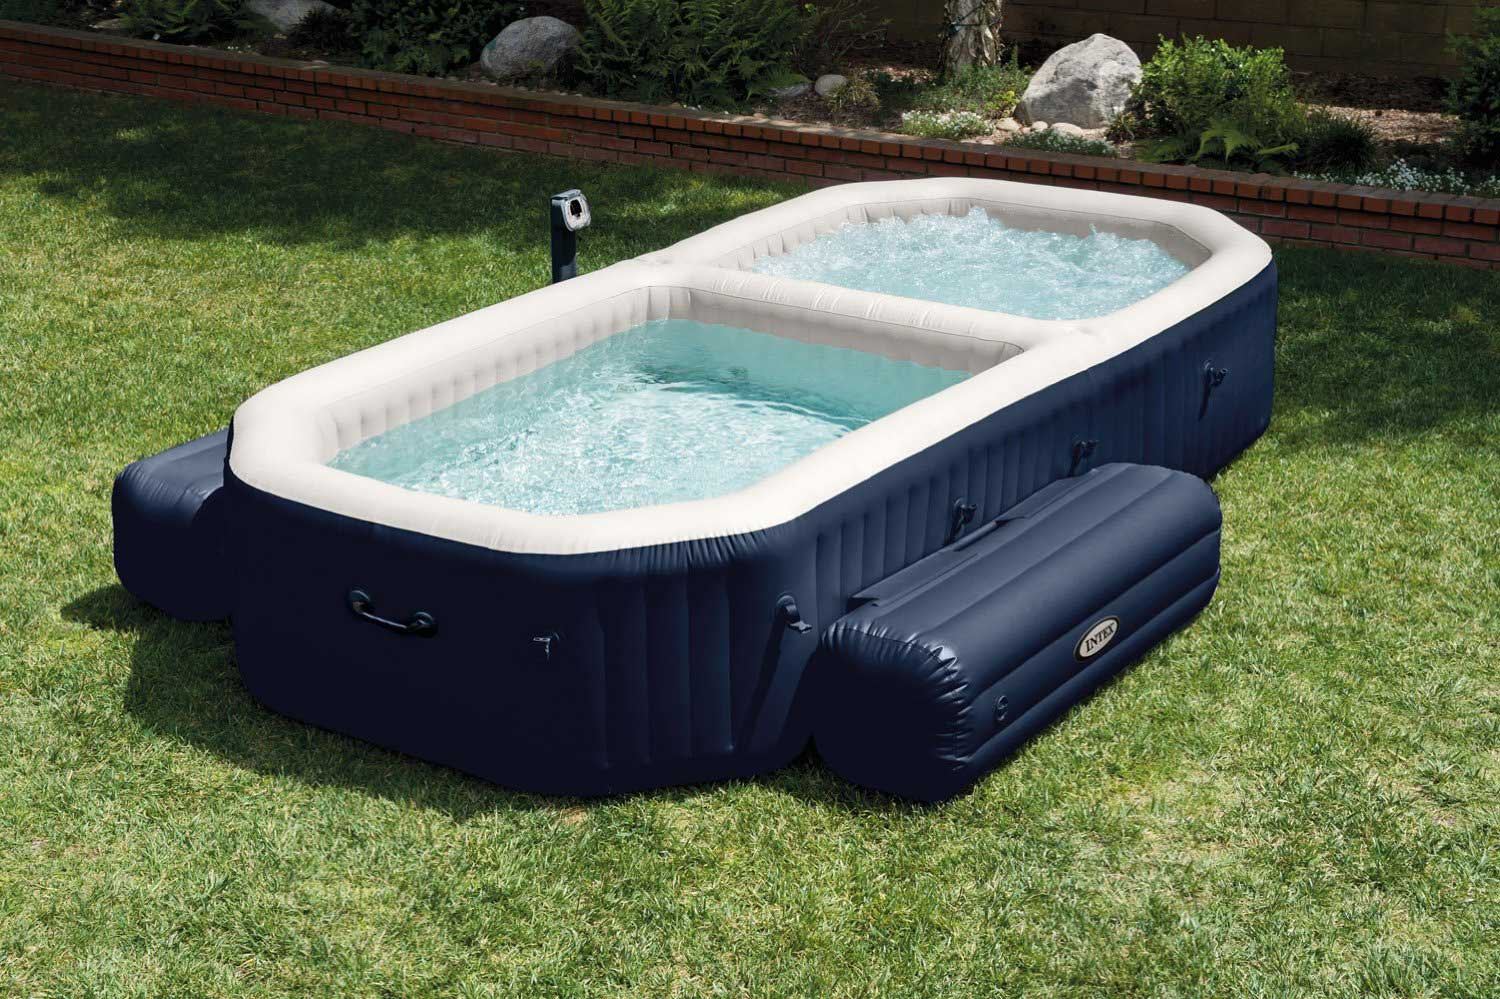 Intex purespa bubble hot tub and pool set review best inflatable hot tub center Intex inflatable swimming pool